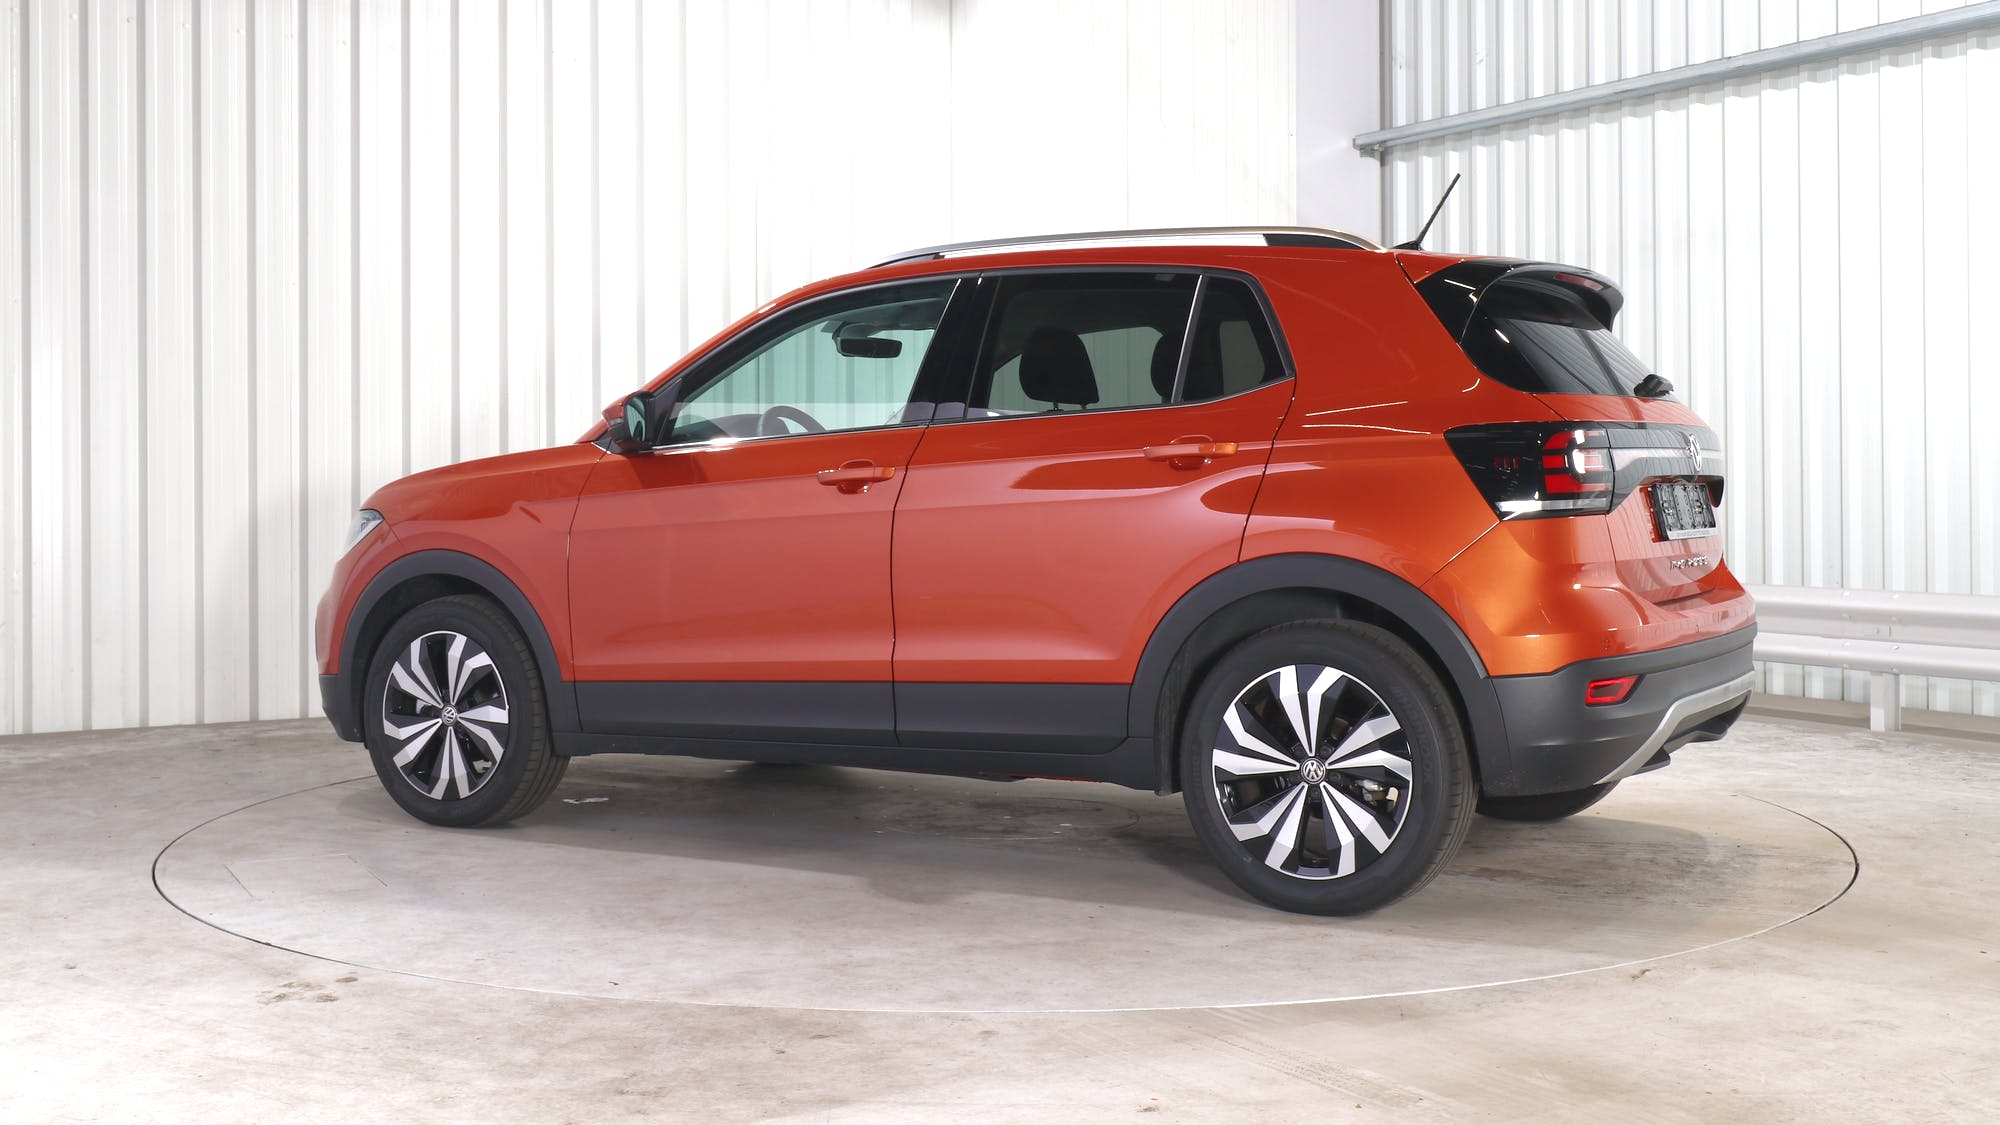 VOLKSWAGEN T-CROSS leasing exterior 3